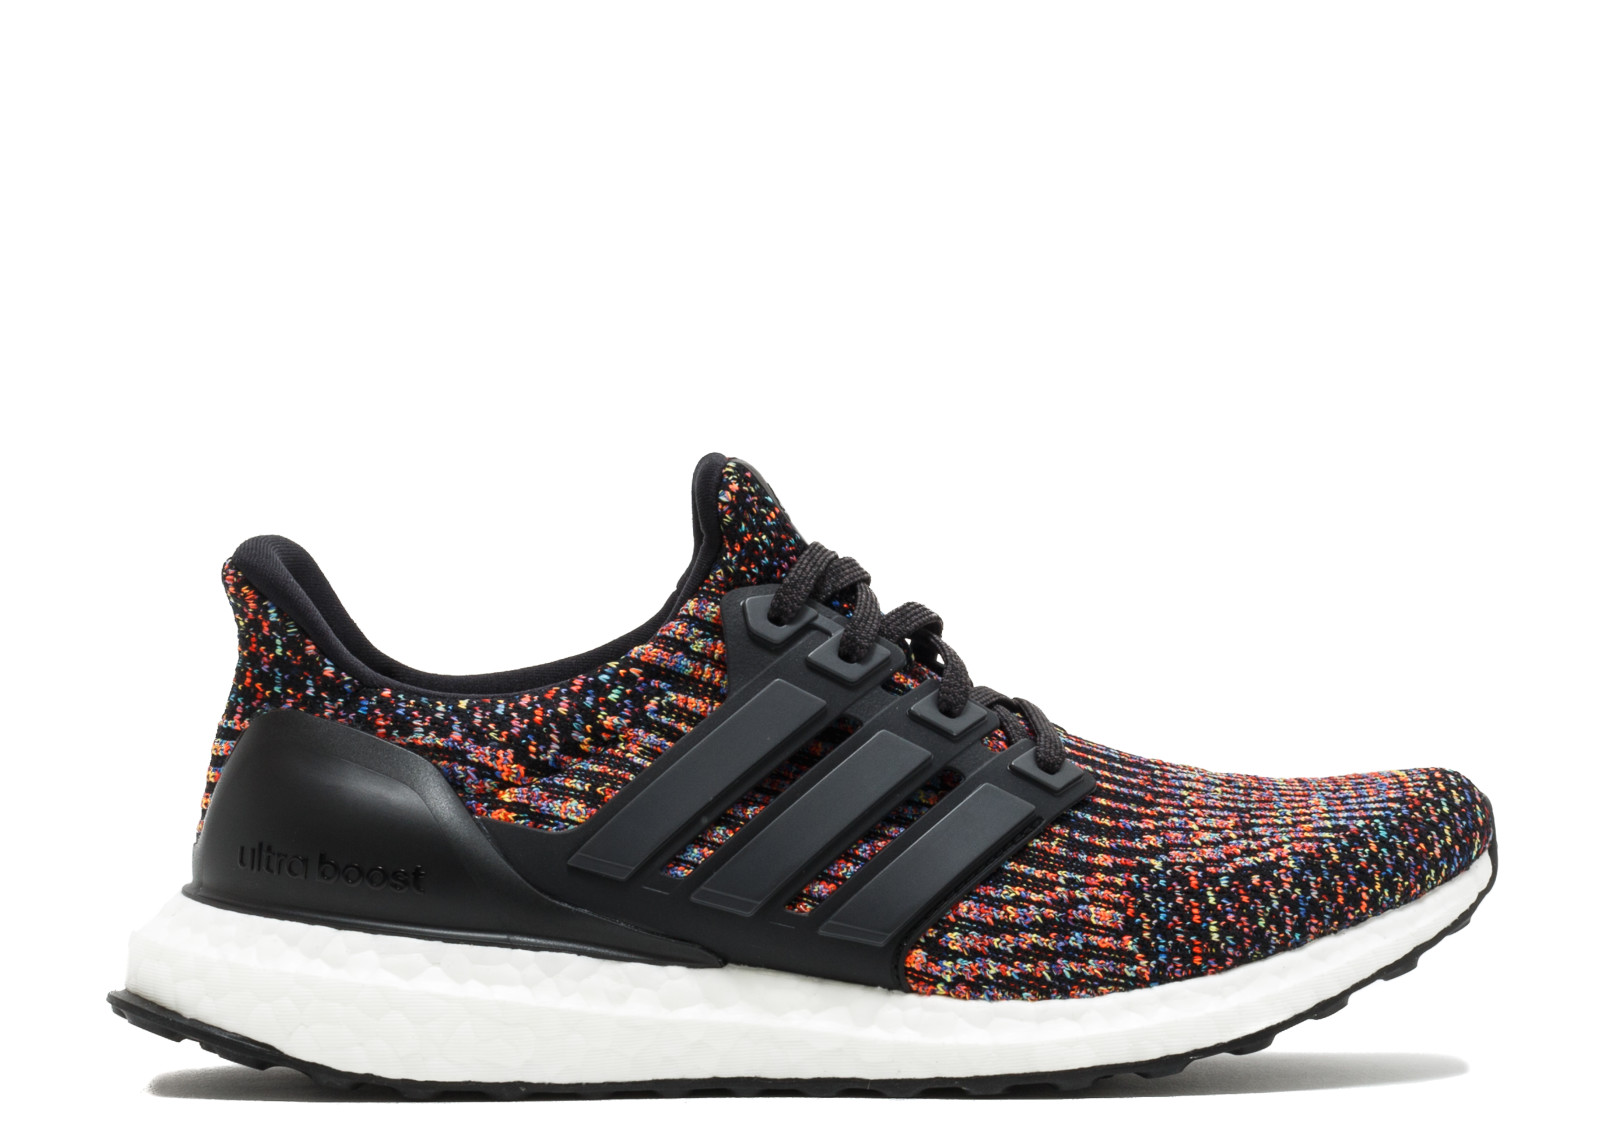 adidas - ULTRA BOOST LTD - CG3004 - Walmart.com